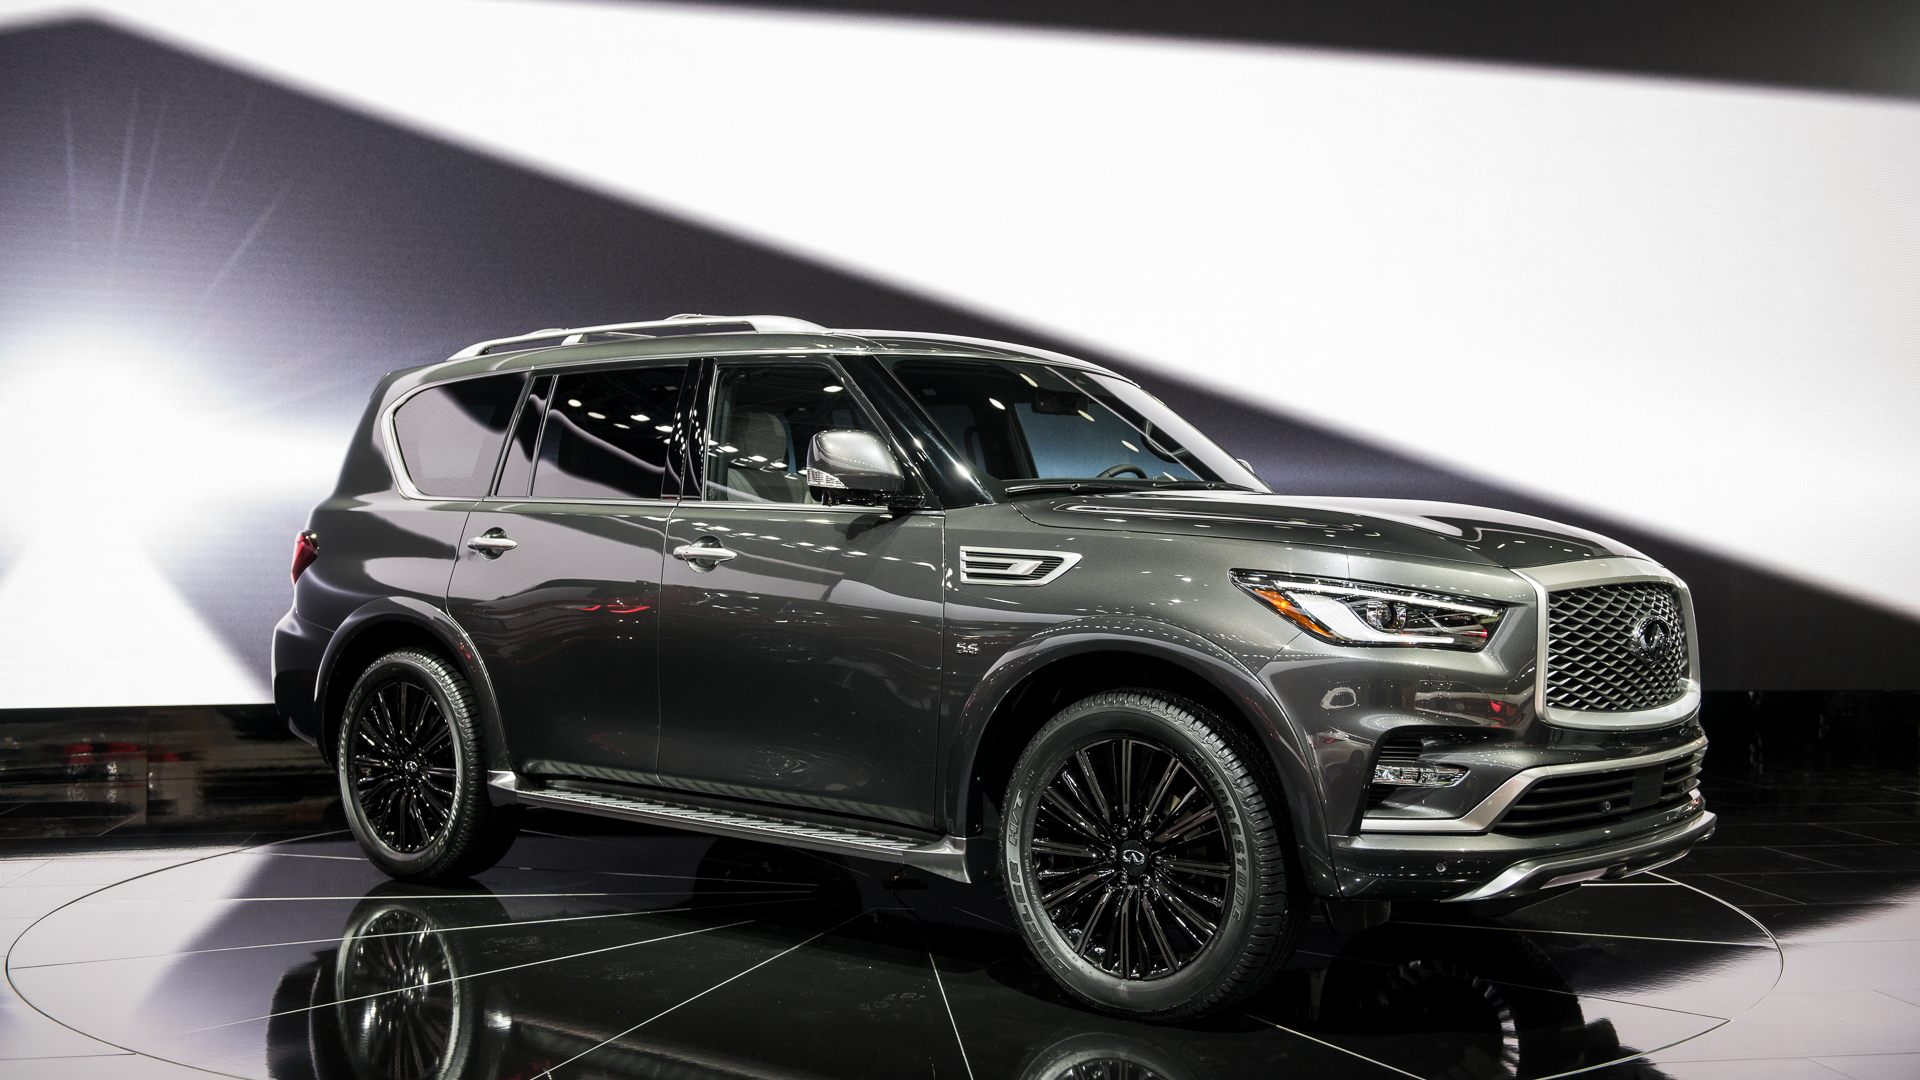 2019 Infiniti QX80 and QX60 get added luxury with Limited trim